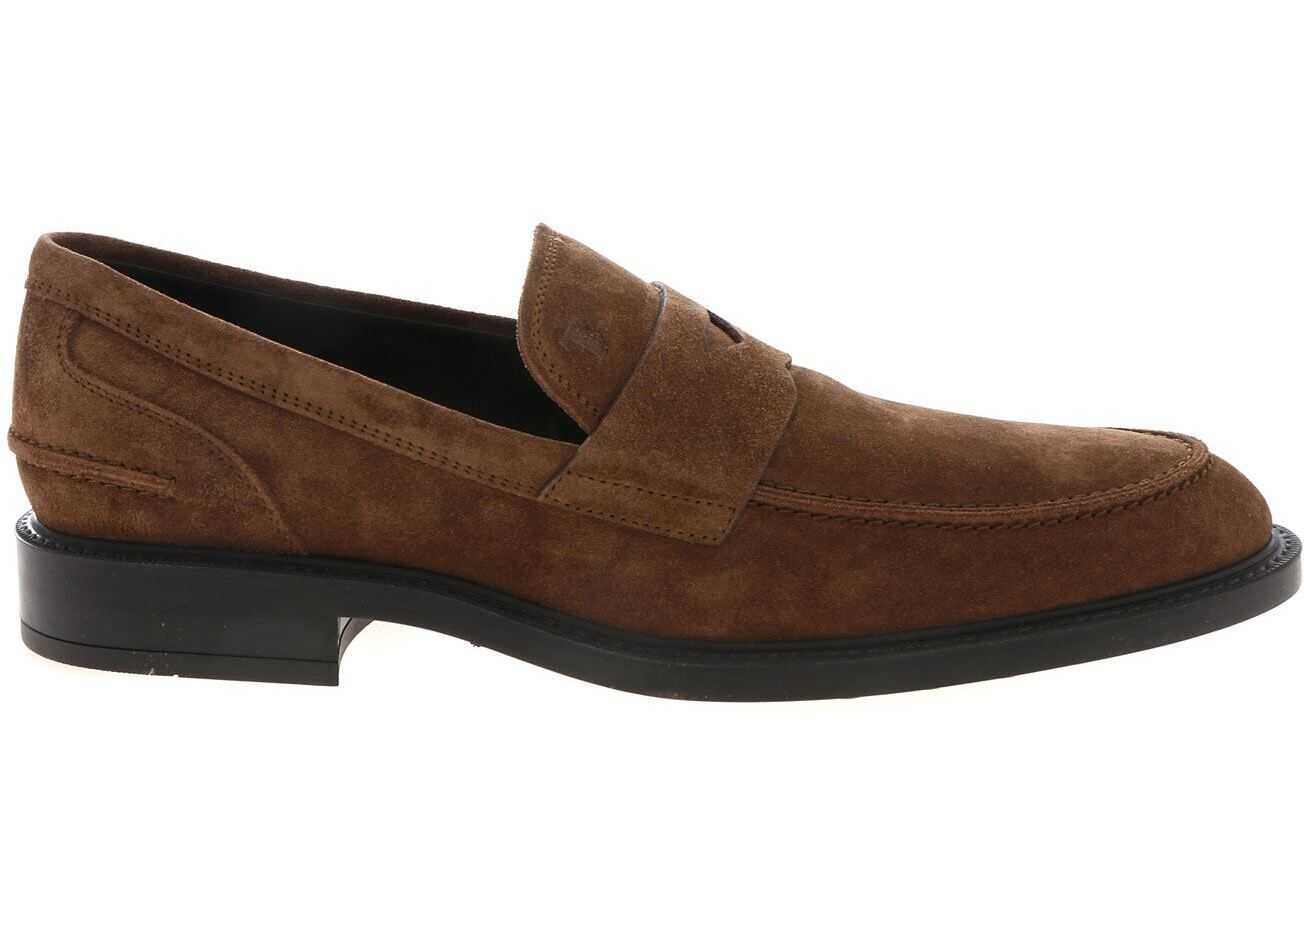 Suede Loafers In Beige thumbnail